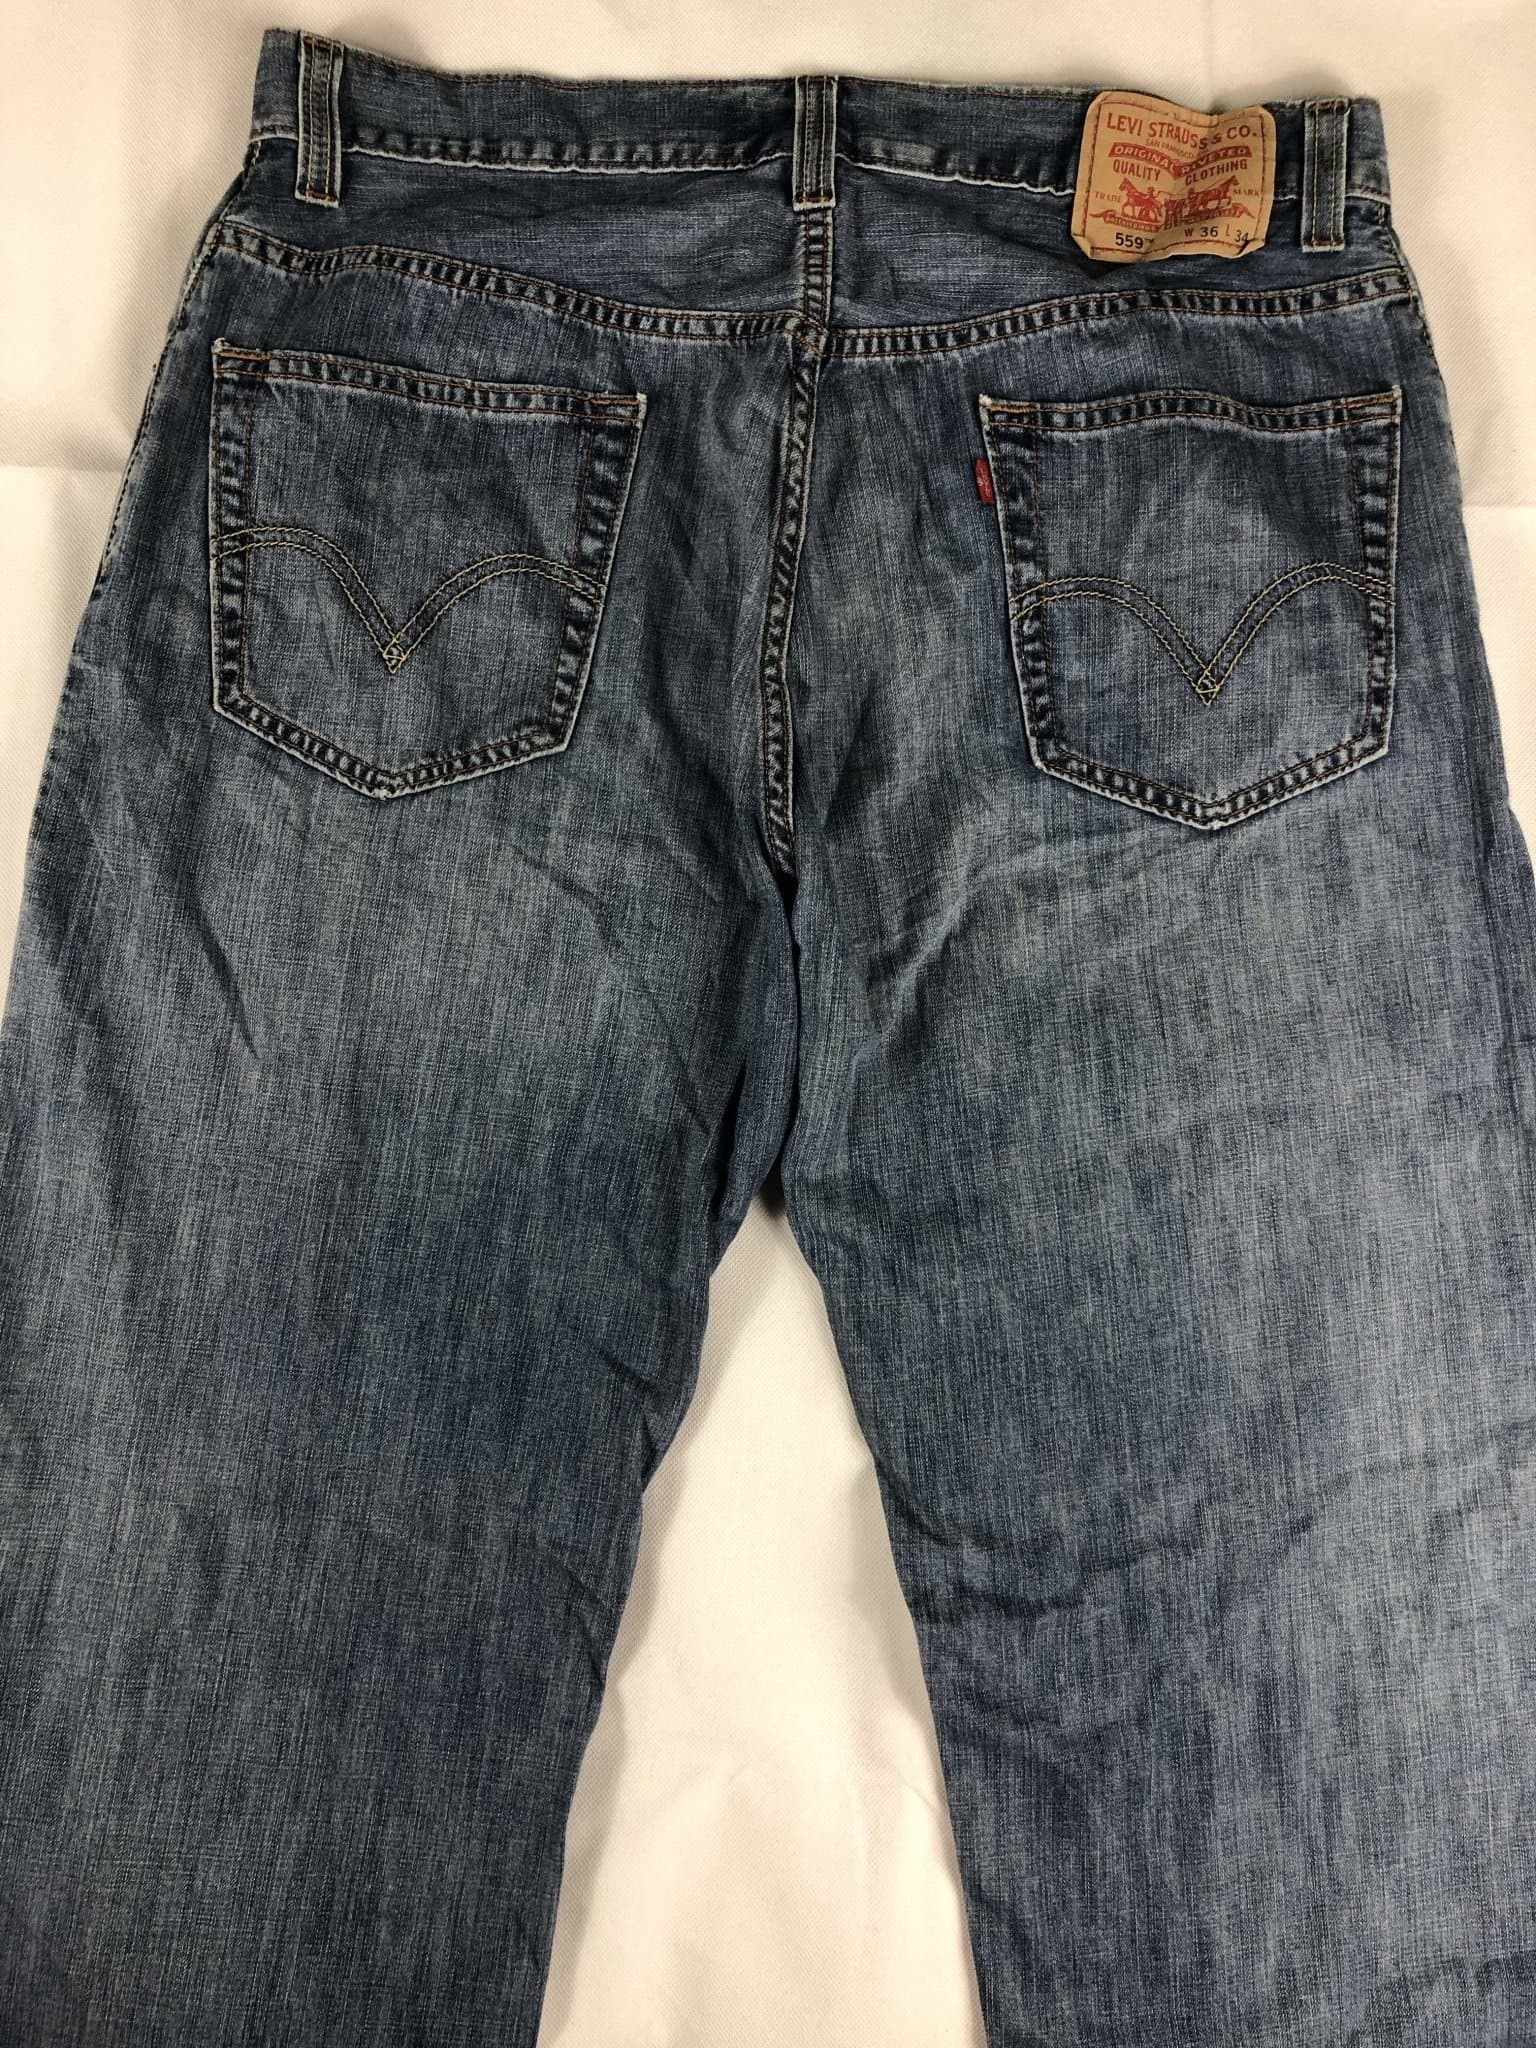 Vintage Levi's 559 Jeans W36 L34 (M15) - Discounted Deals UK